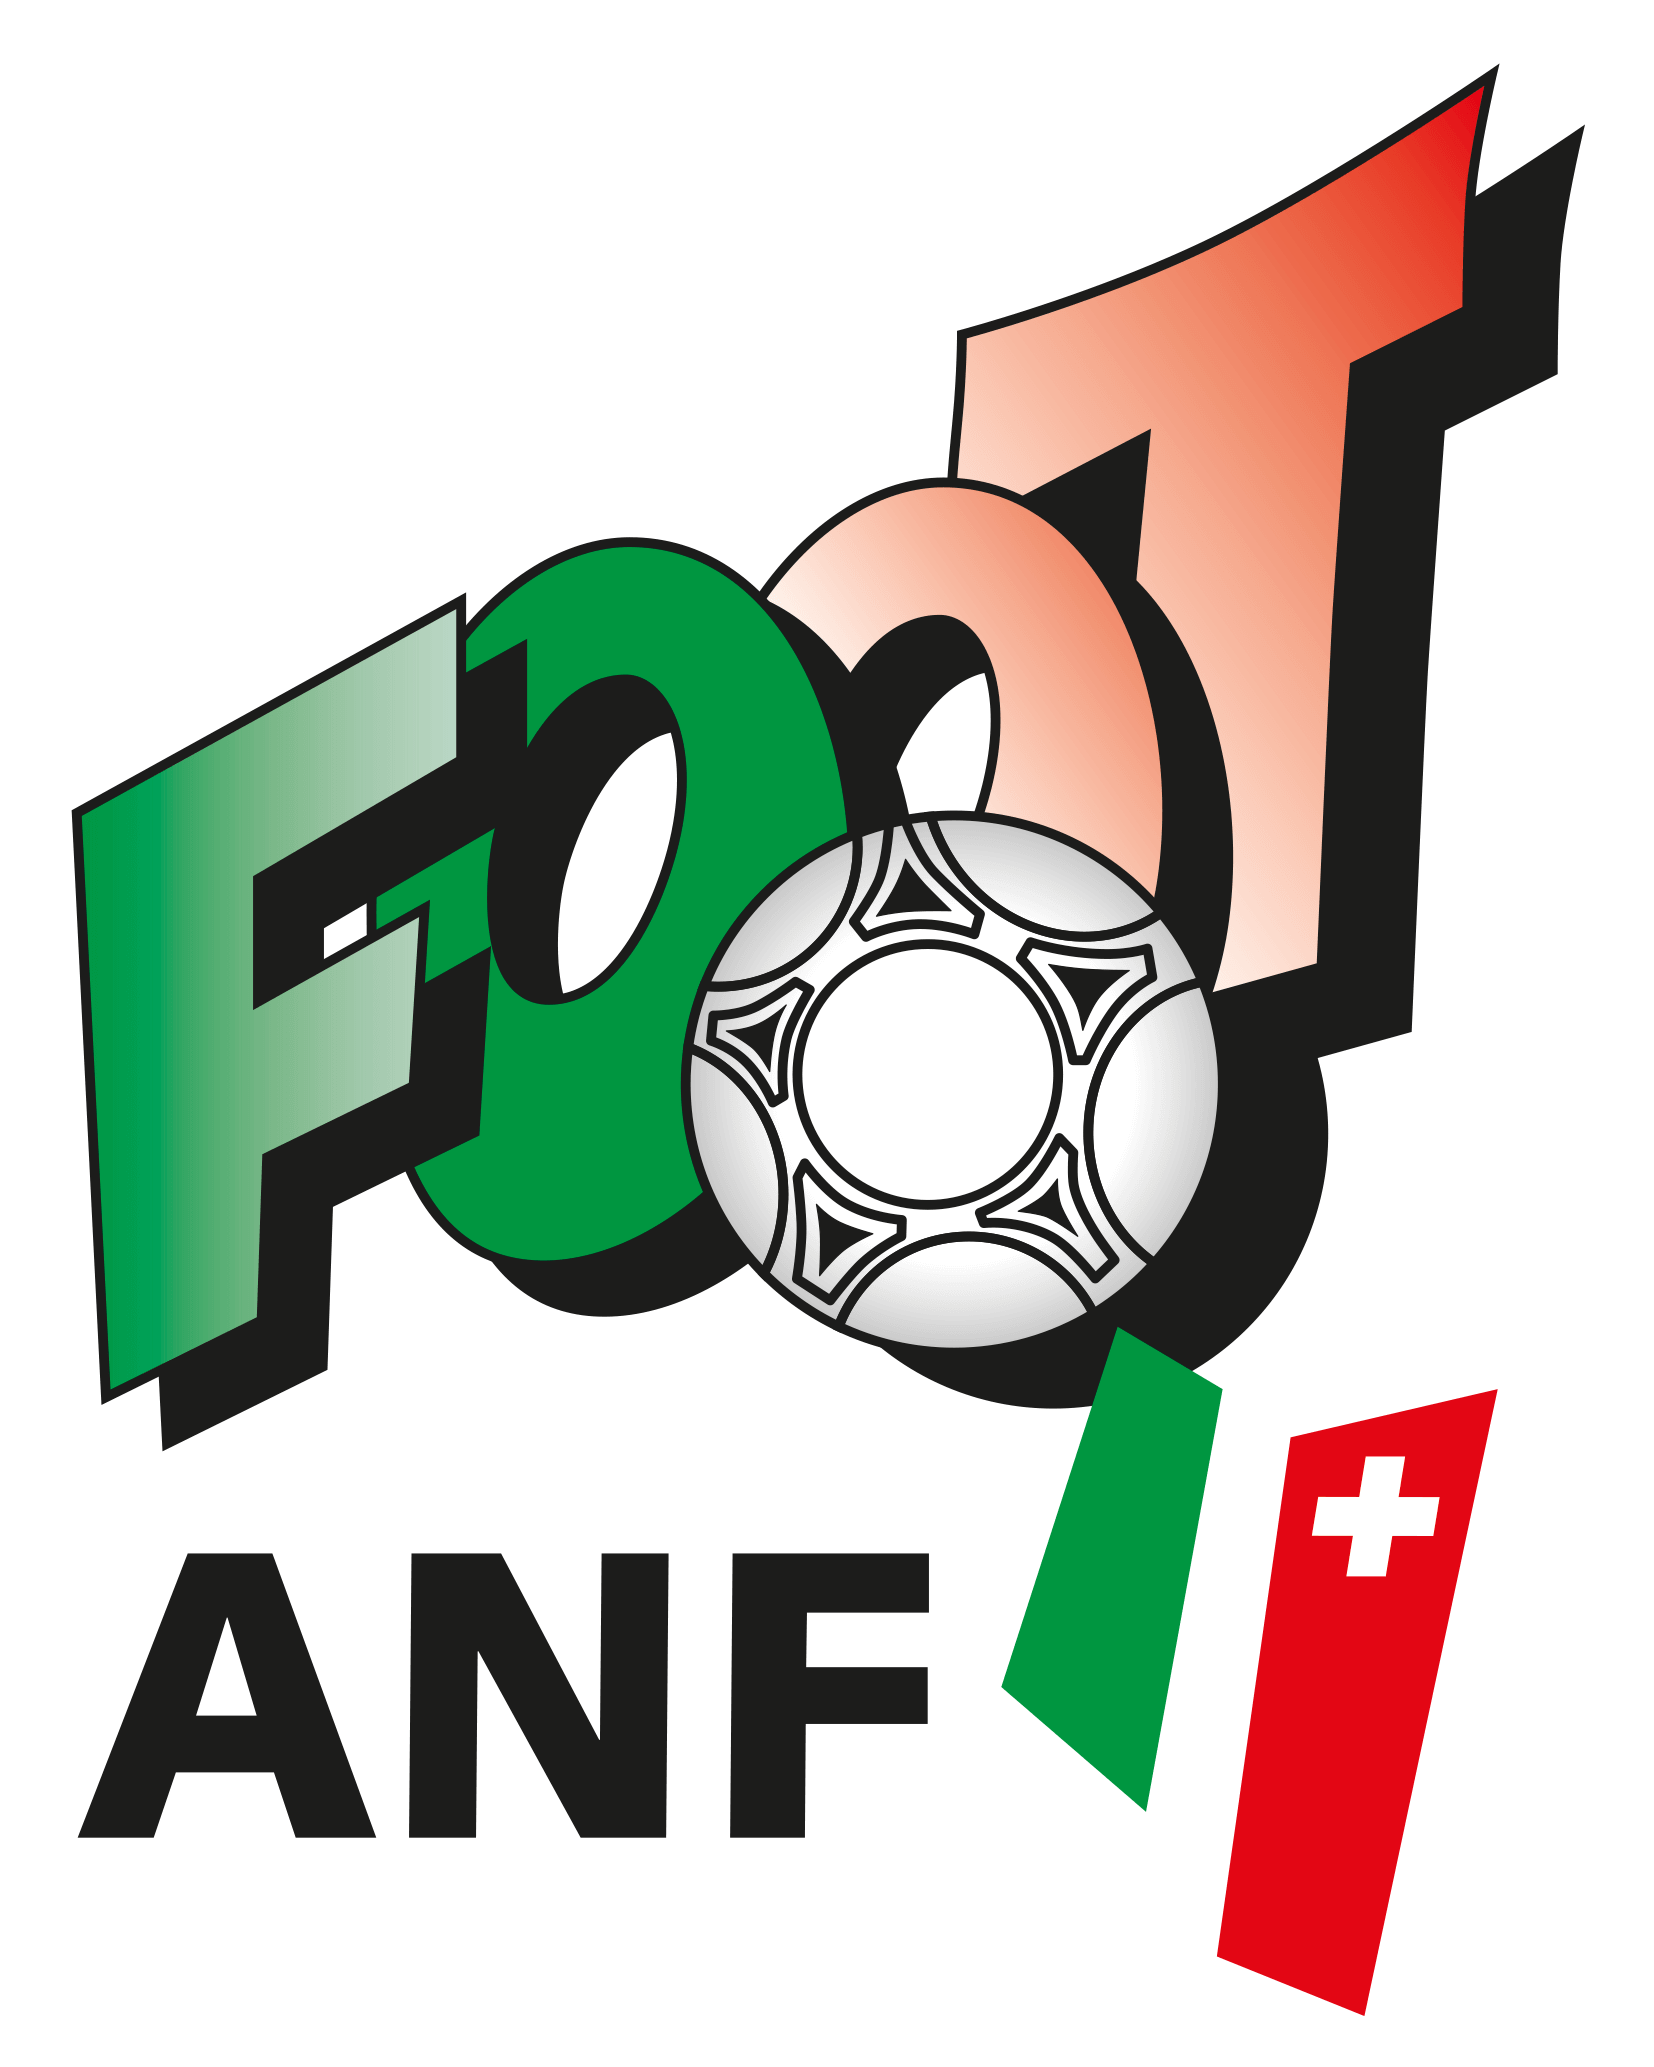 Association Neuchâteloise de Football (ANF)